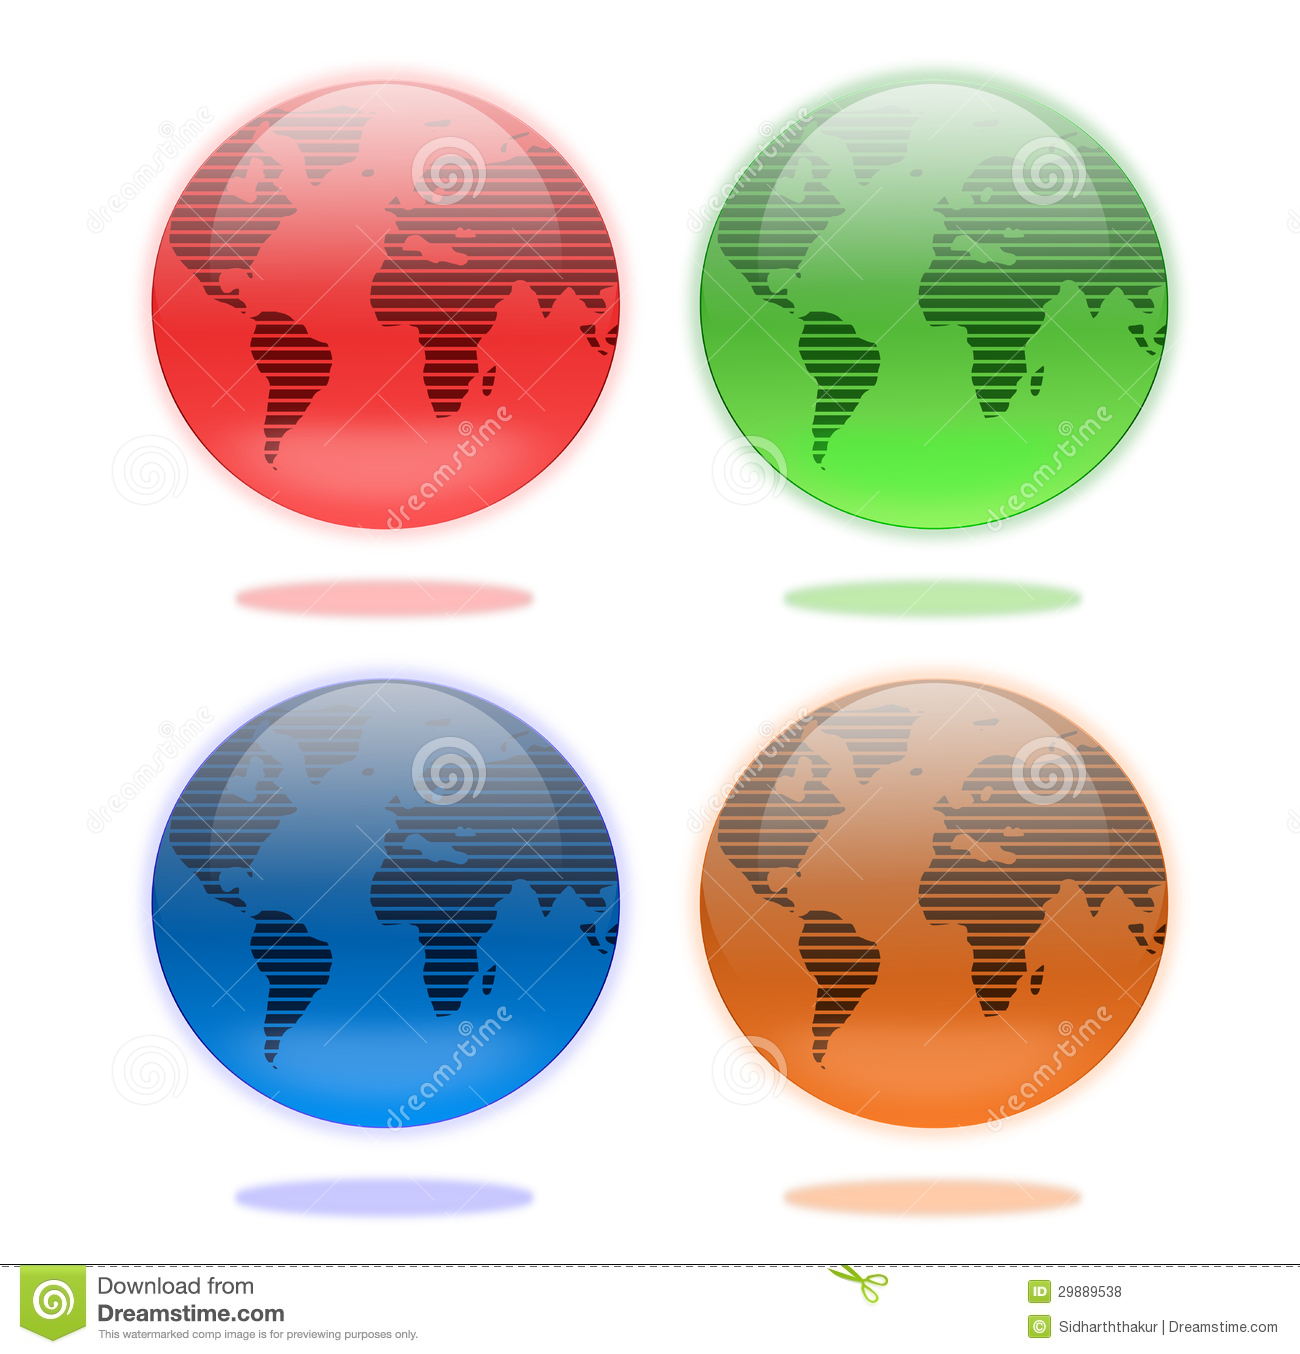 Brown And Blue Interior Color Schemes For An Earthy And: Set Of Earth Globes In Four Colors Royalty Free Stock